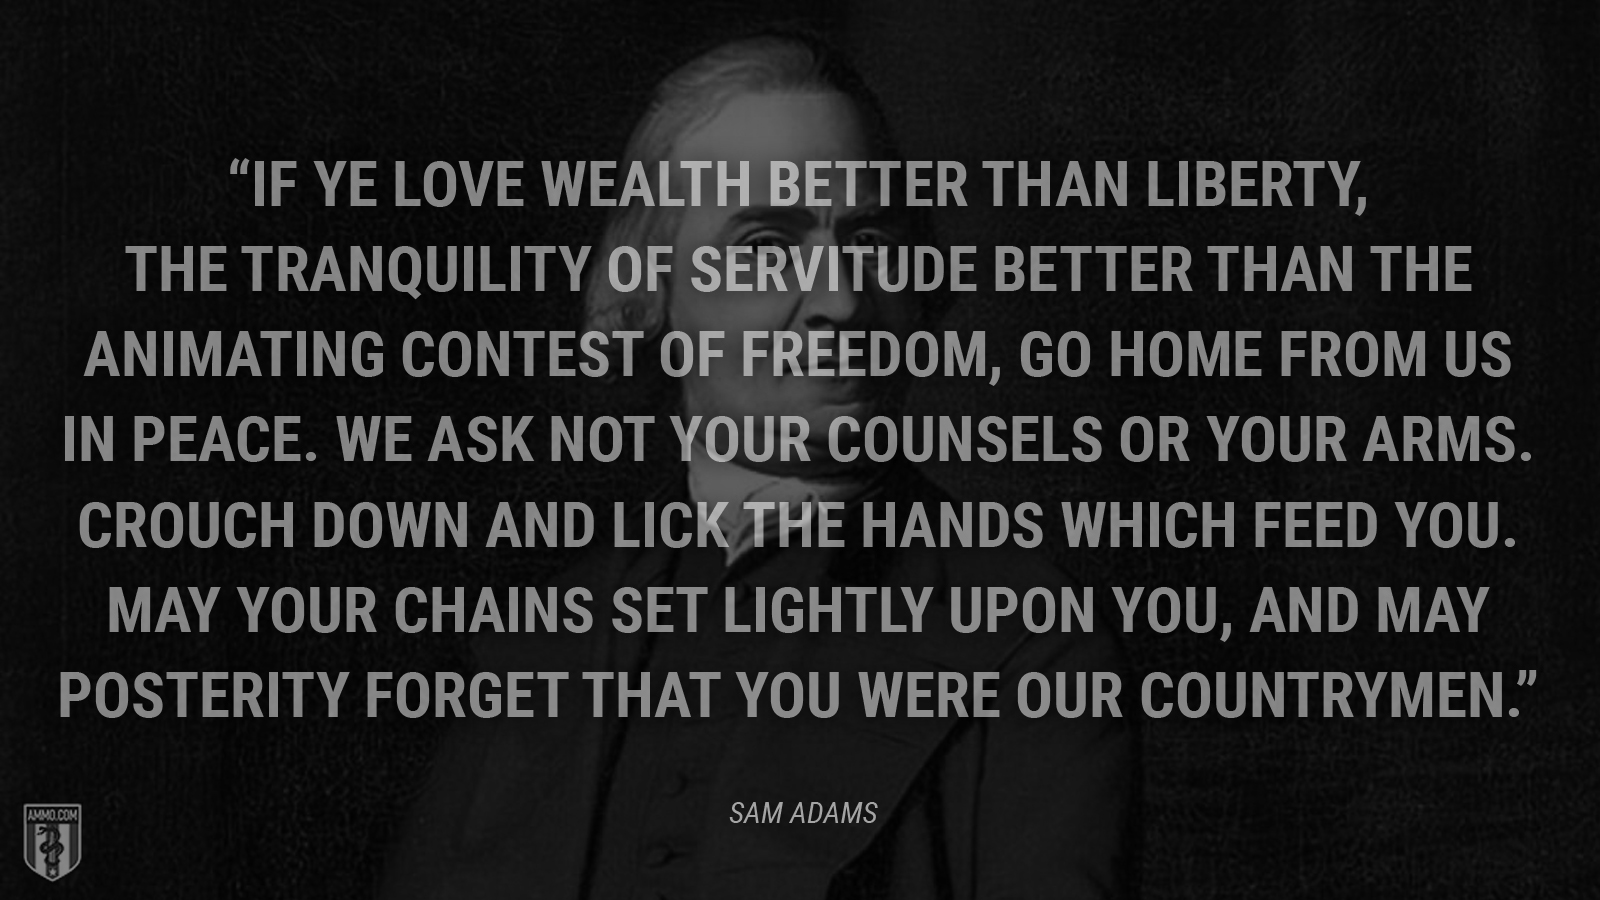 """If ye love wealth better than liberty, the tranquility of servitude better than the animating contest of freedom, go home from us in peace. We ask not your counsels or your arms. Crouch down and lick the hands which feed you. May your chains set lightly upon you, and may posterity forget that you were our countrymen."" - Sam Adams"